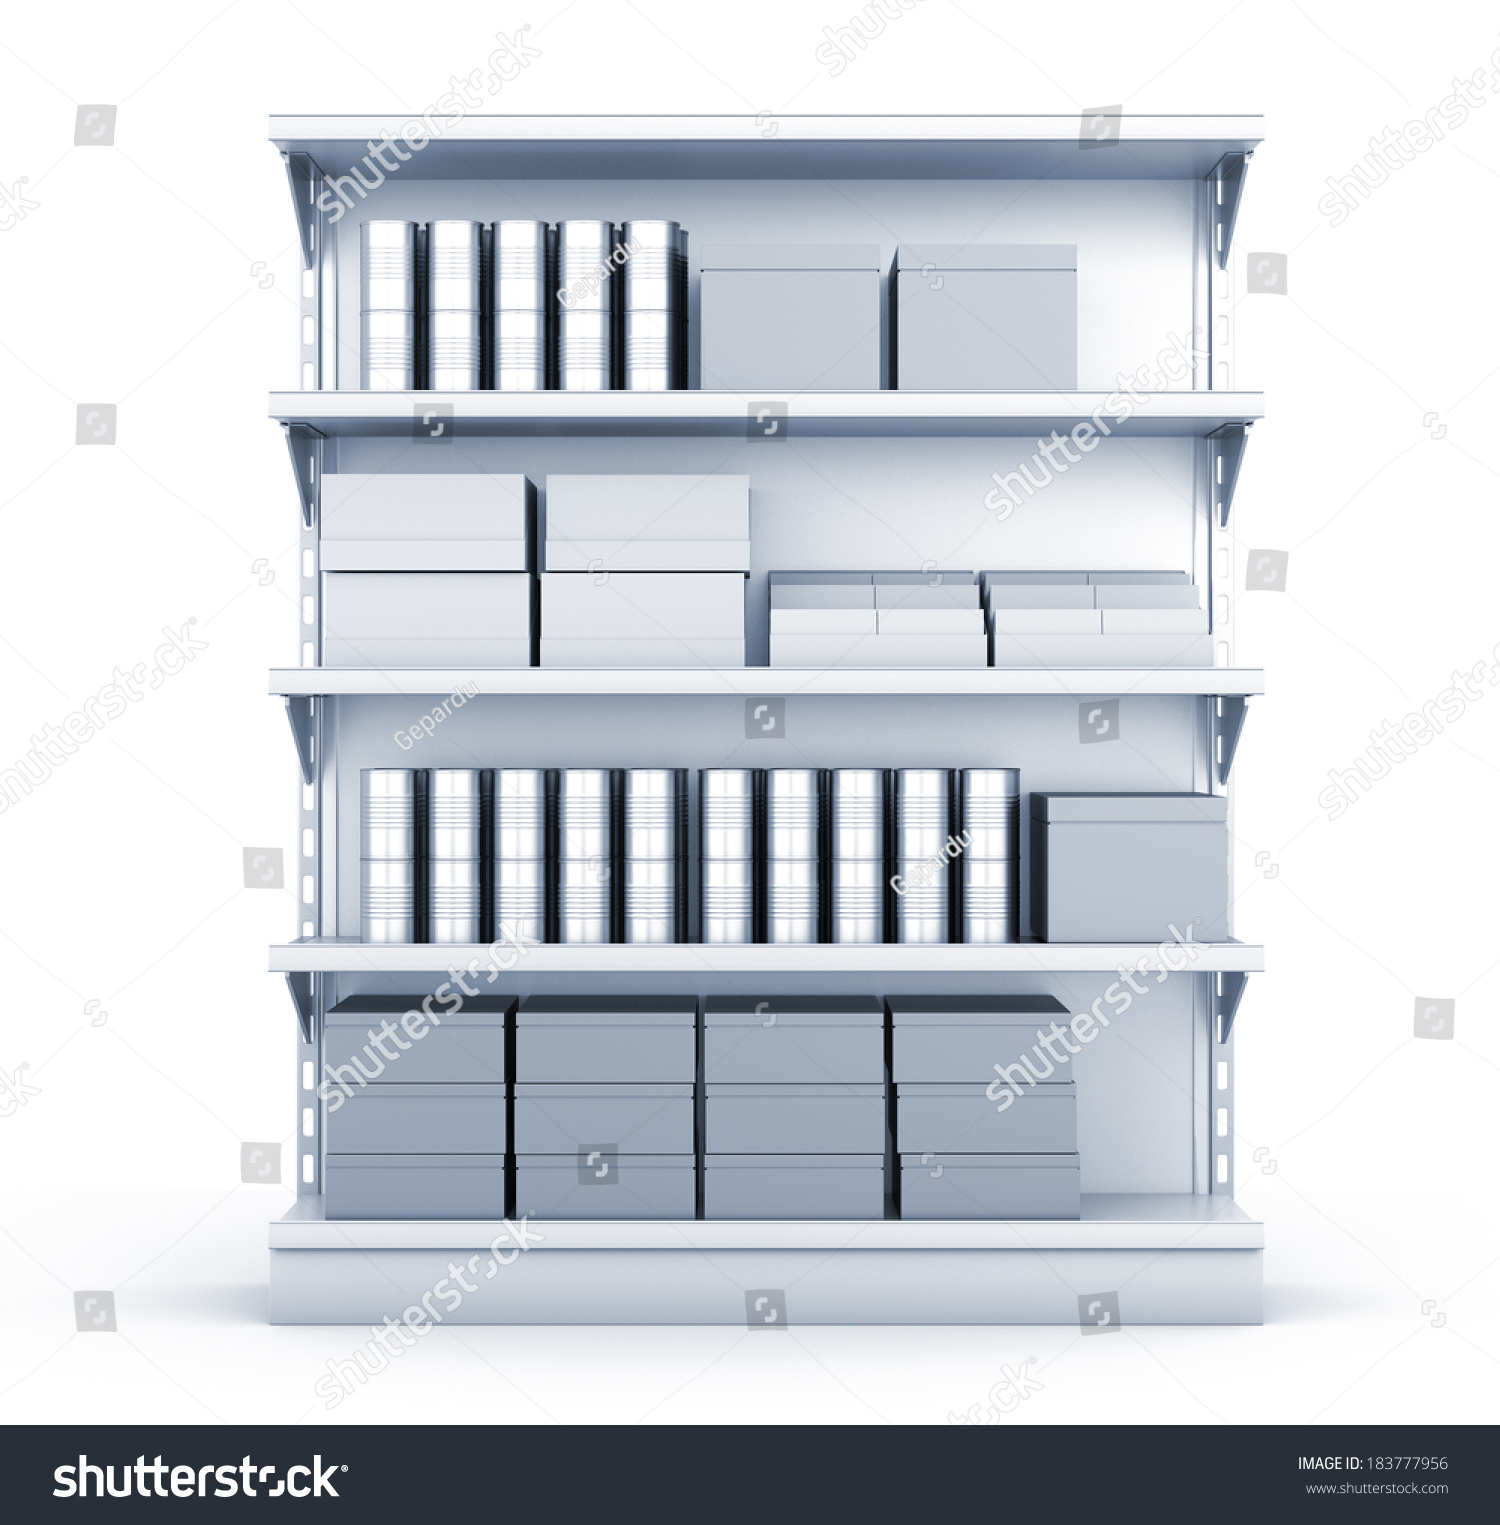 Blank Supermarket Products On Shelves View Stock Illustration